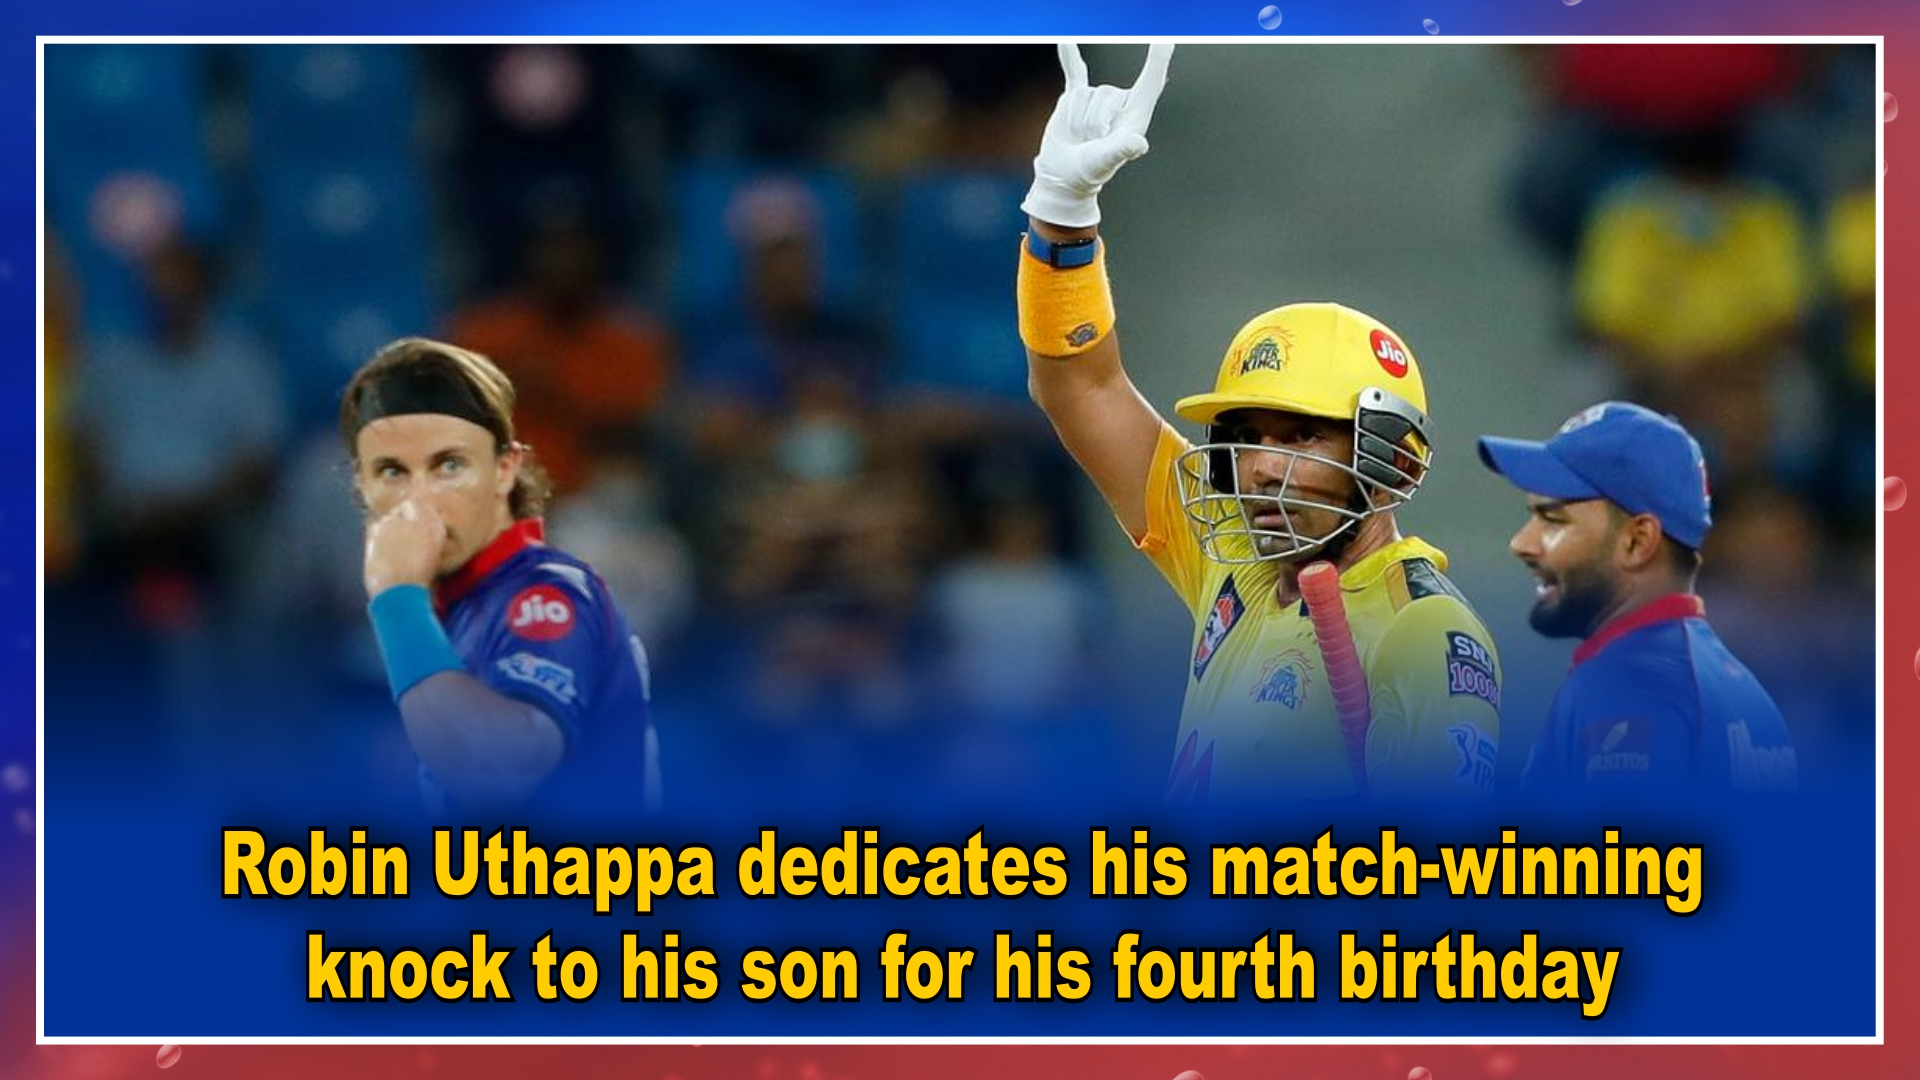 Robin Uthappa dedicates his match-winning knock to his son for his fourth birthday